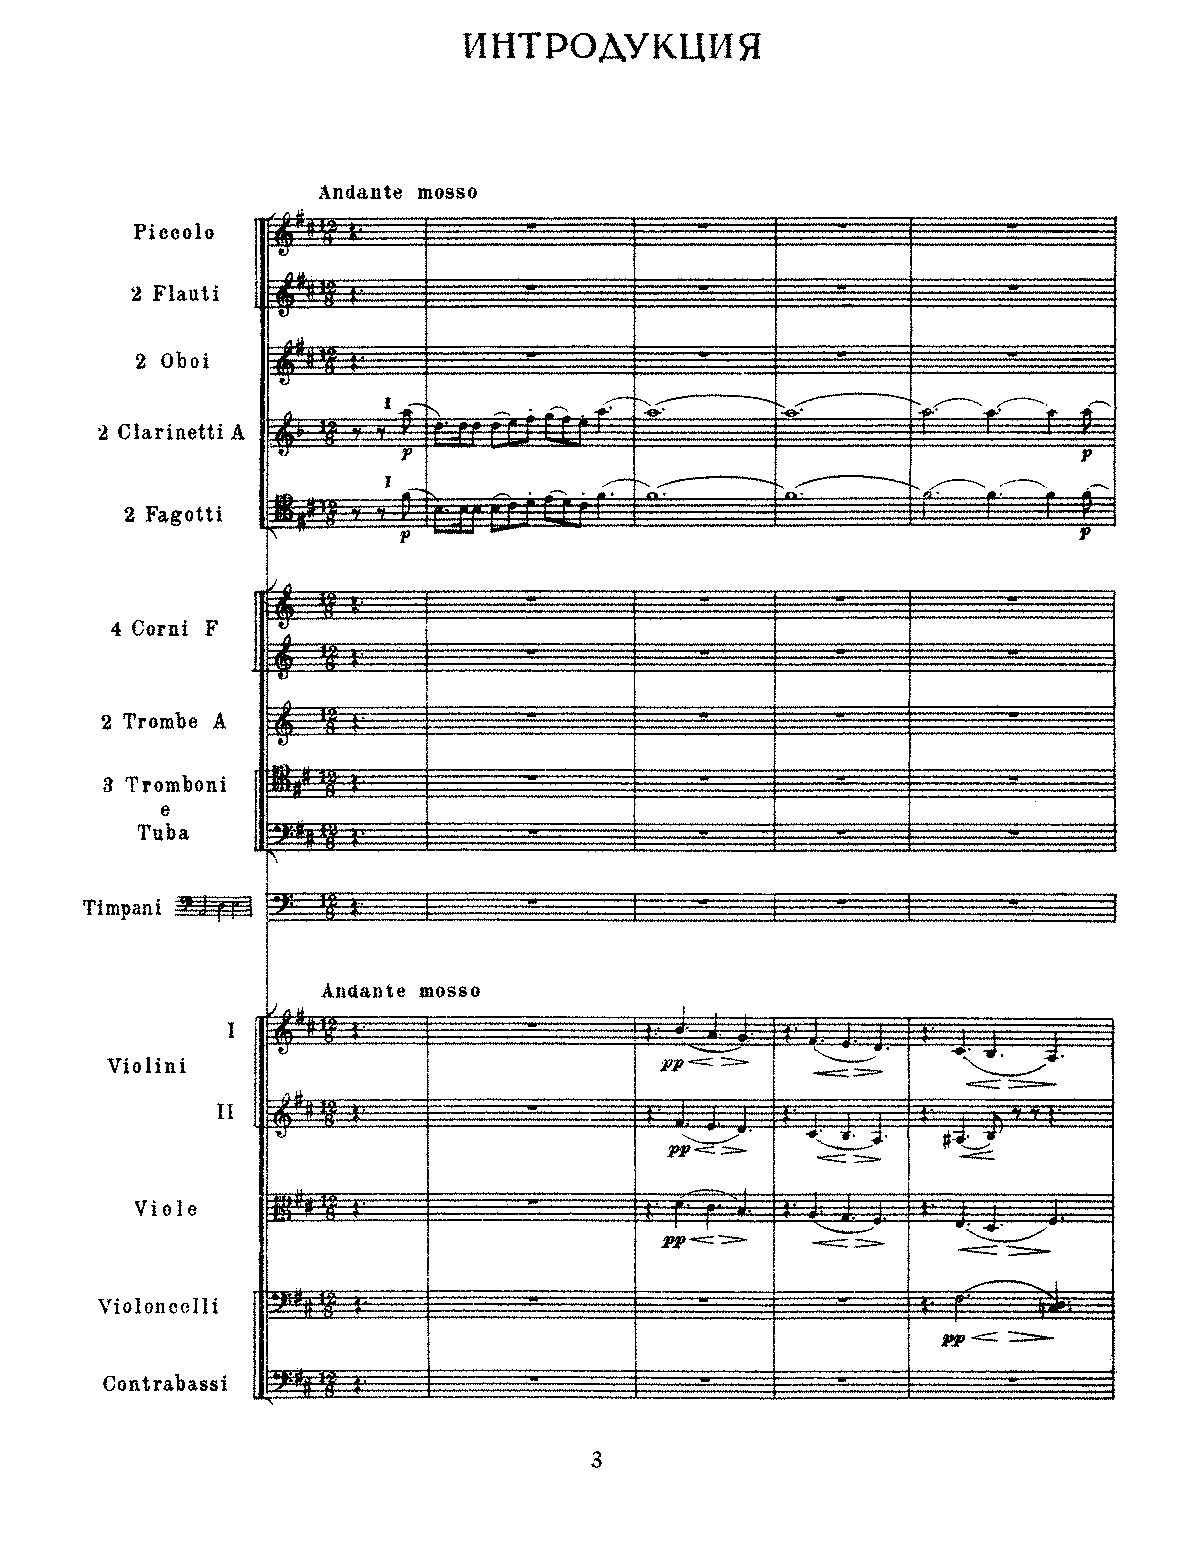 PMLP59849-Tchaikovsky - The Queen of Spades, Op. 68 - Prelude and Act I.pdf